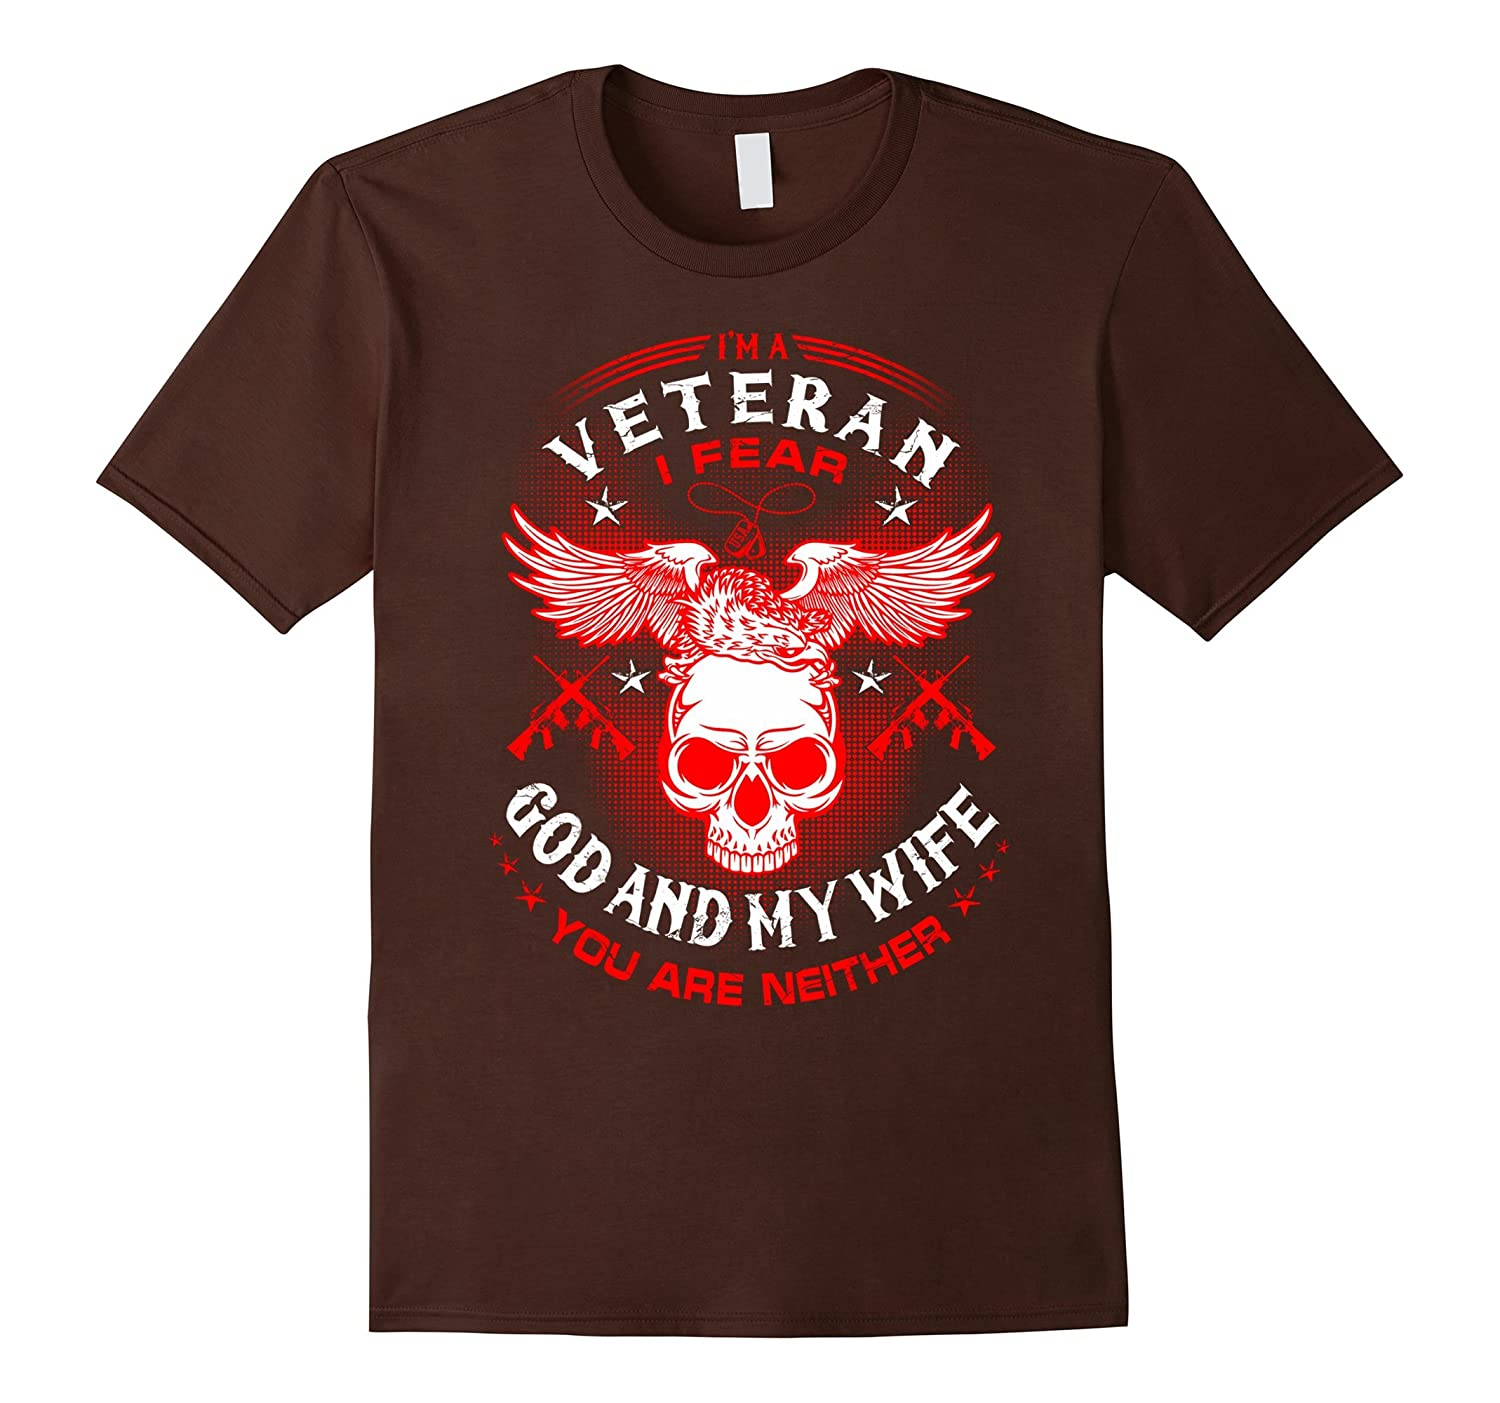 I'm A Veteran – I Fear God And My Wife Funny T-Shirt